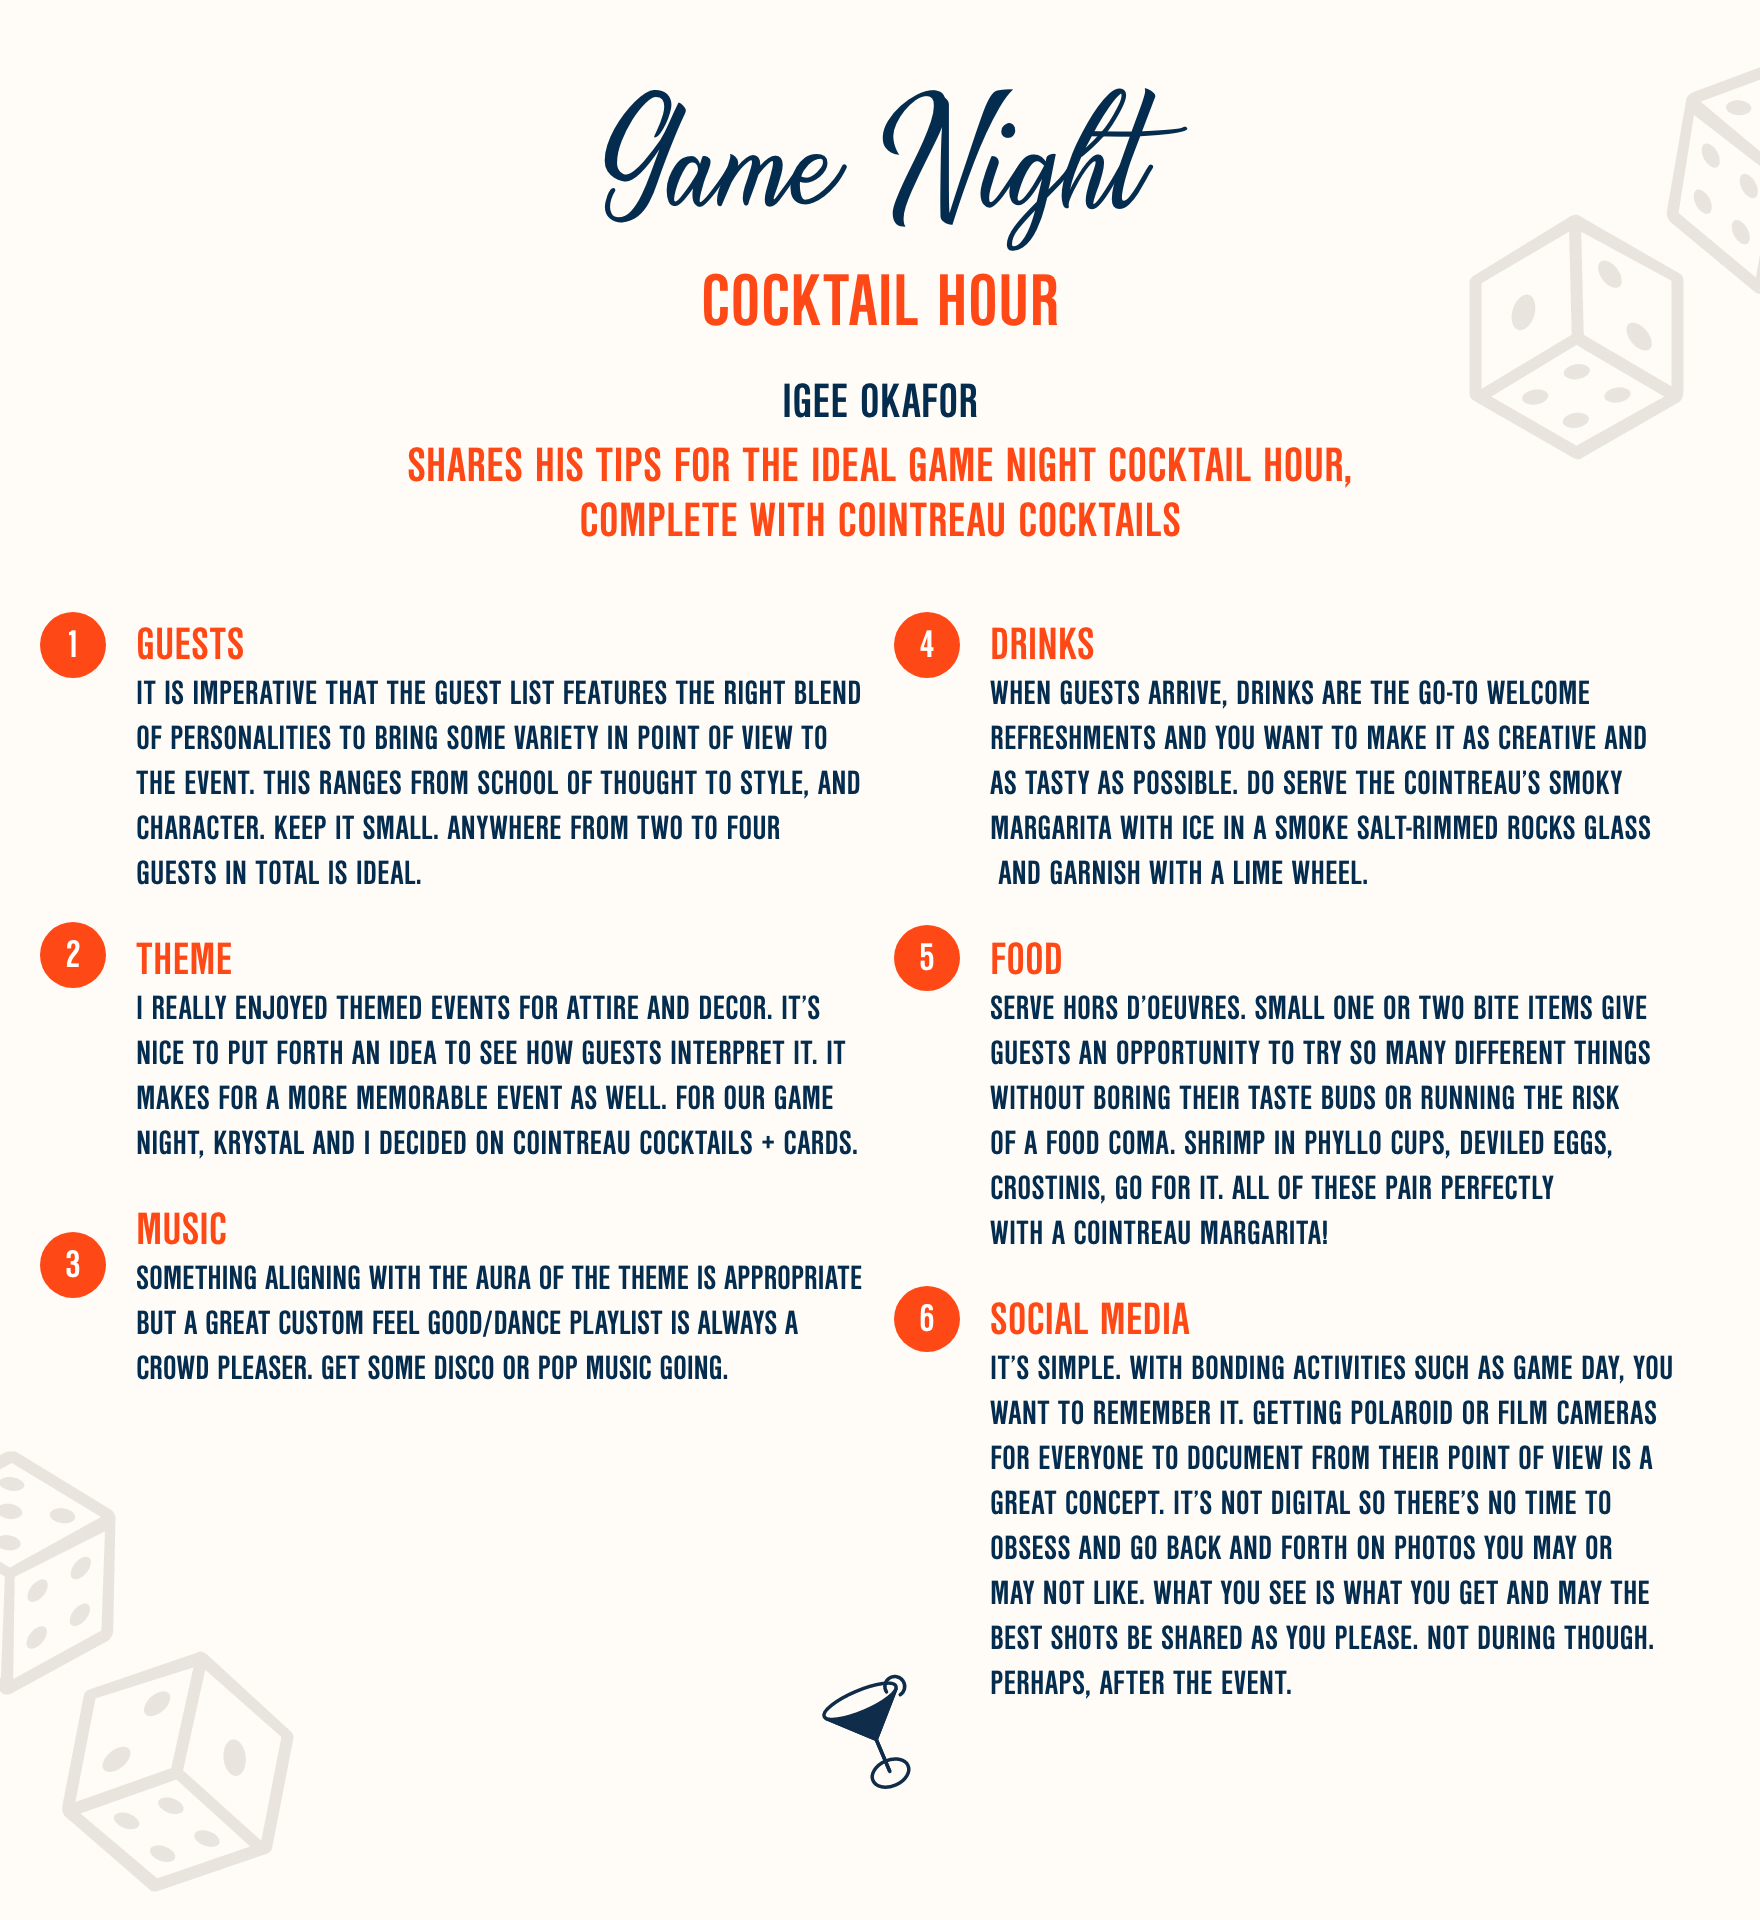 3 Game Night Cocktail Recipes | Cointreau Cocktail Hour